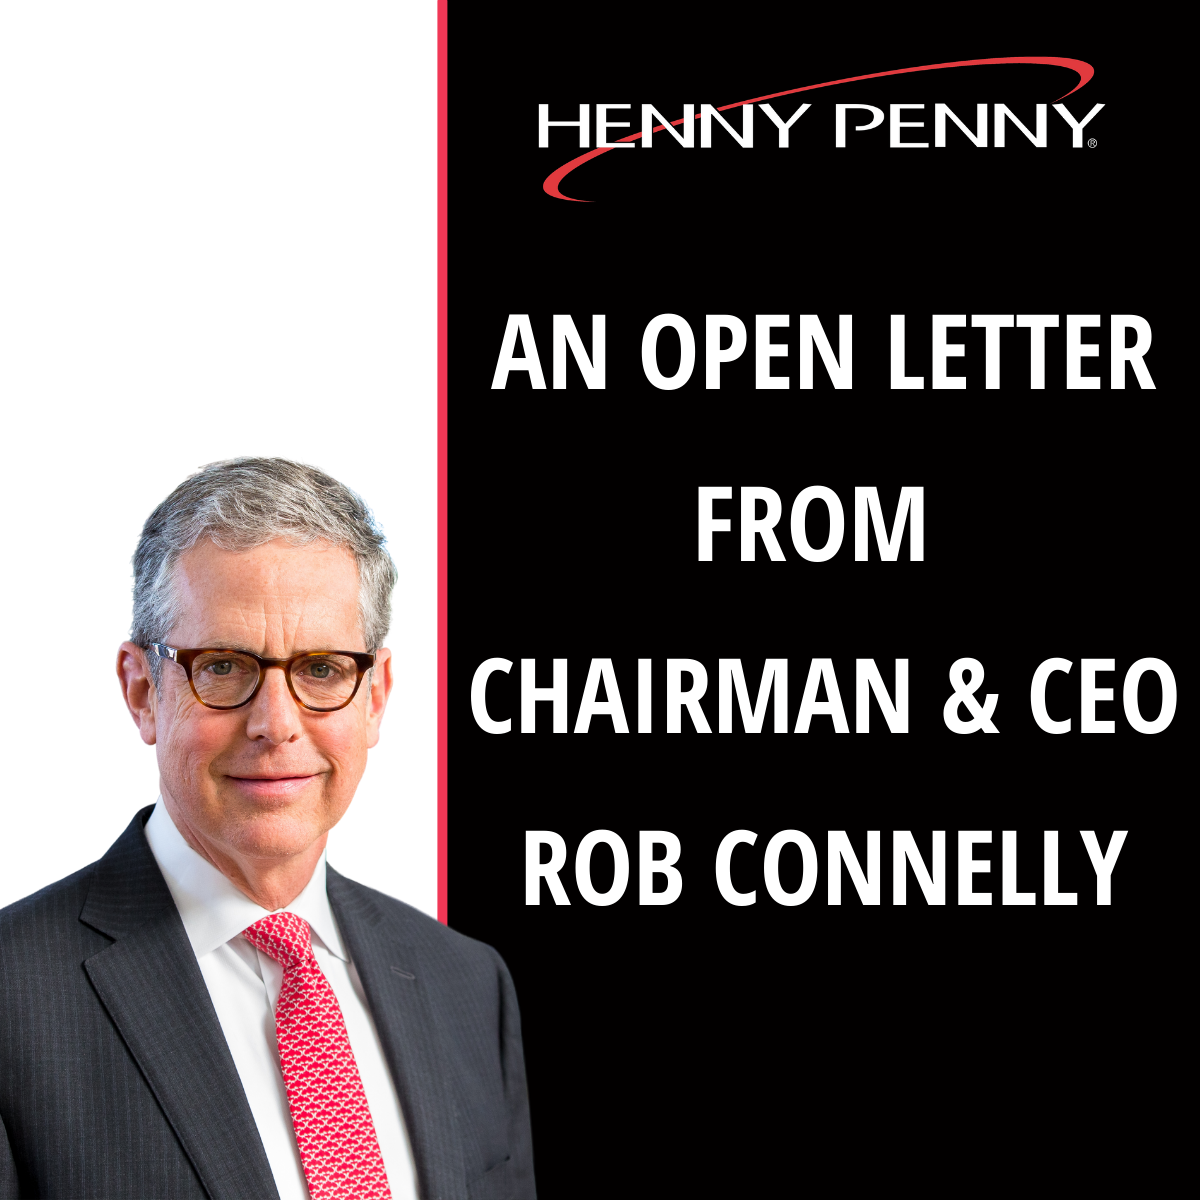 Rob Connelly Chairman & CEO